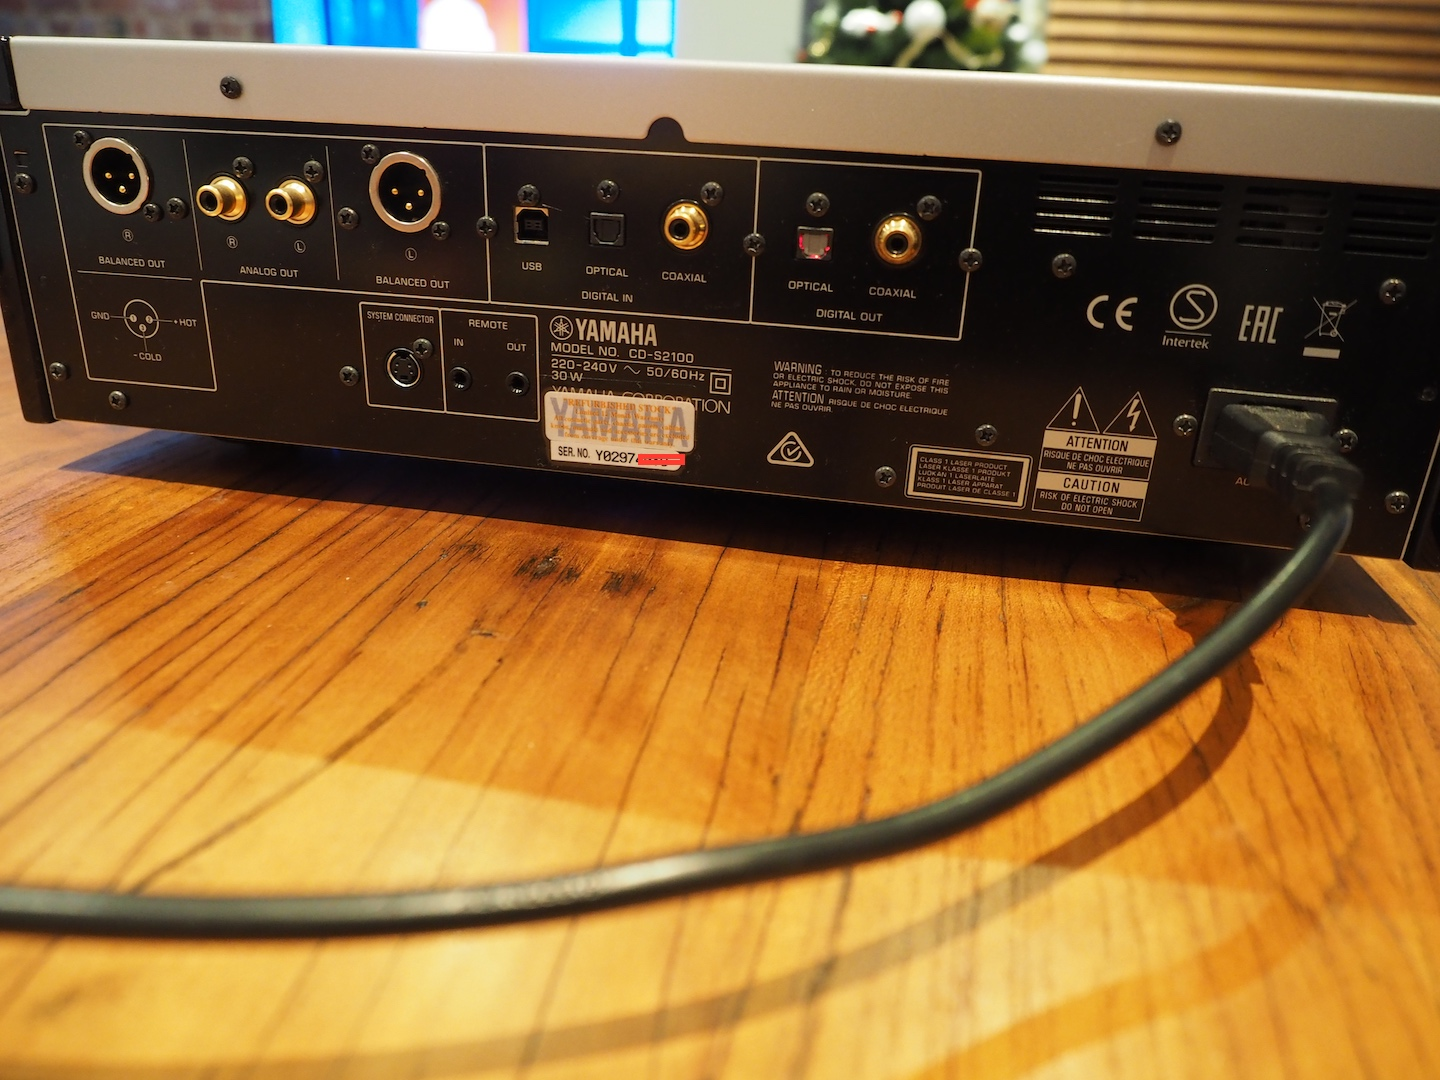 sold yamaha cd s2100 sacd player with dac inputs. Black Bedroom Furniture Sets. Home Design Ideas